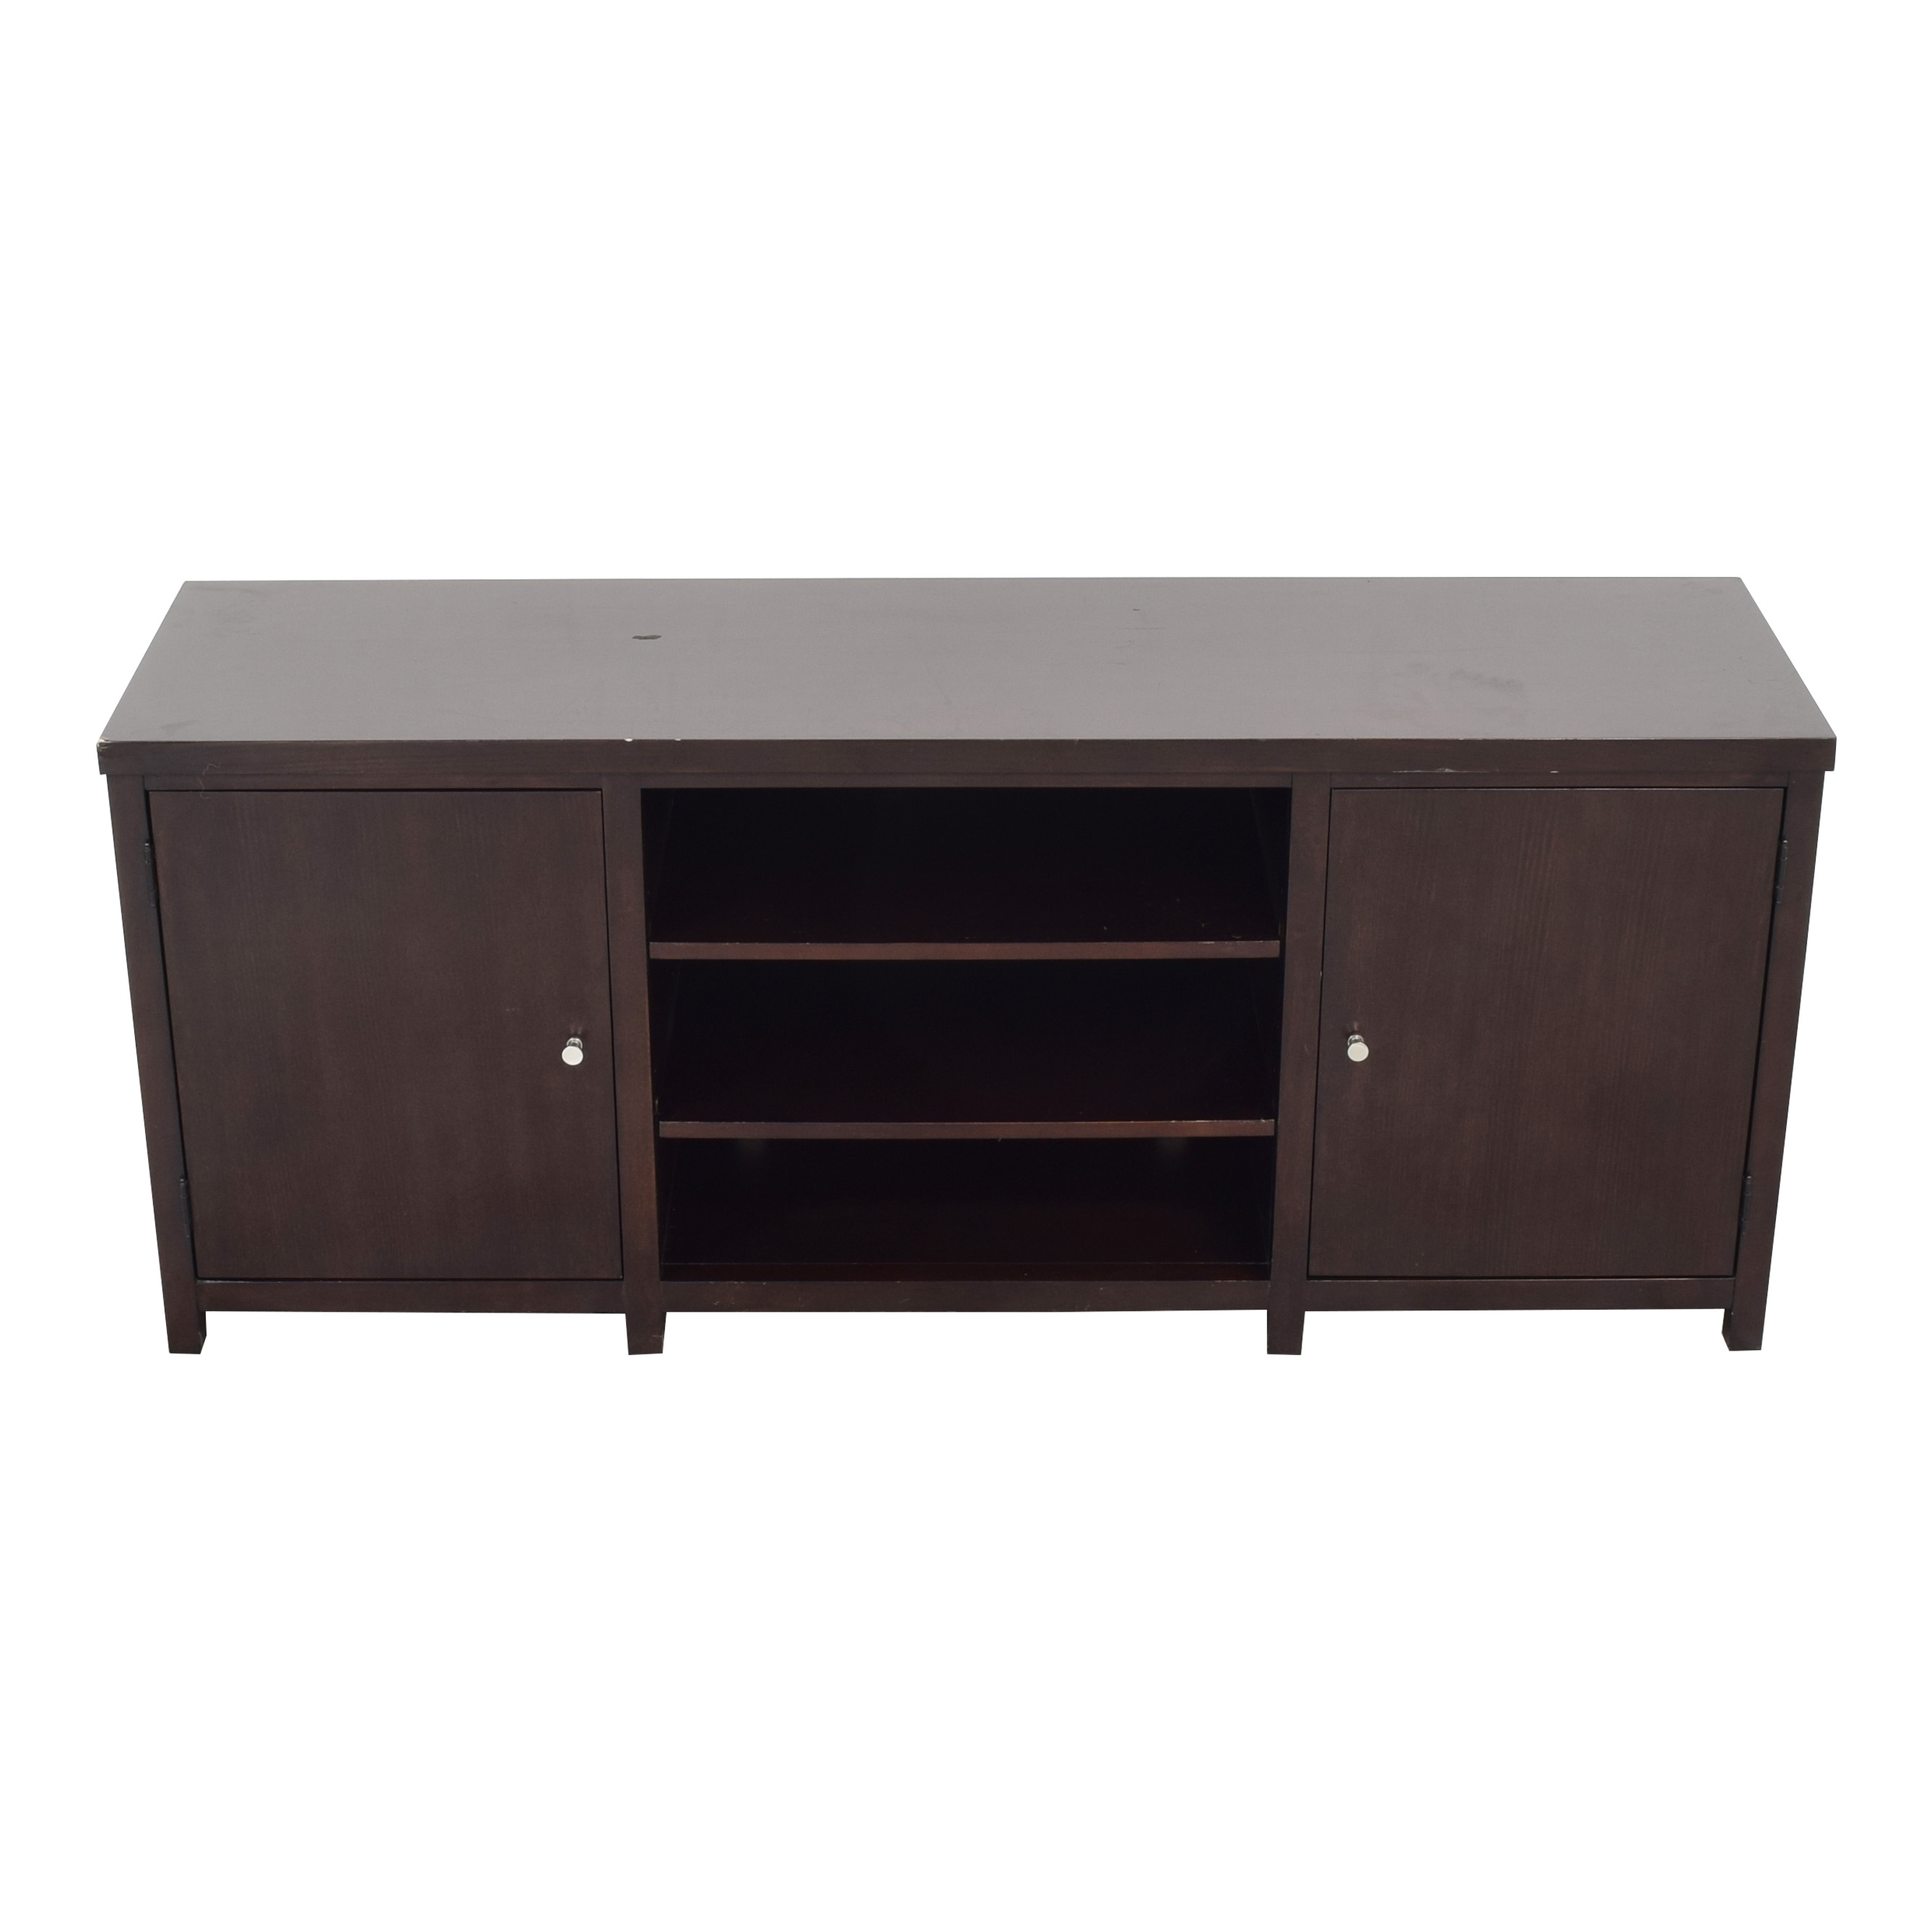 Mitchell Gold + Bob Williams Mitchell Gold + Bob Williams Media Console nj